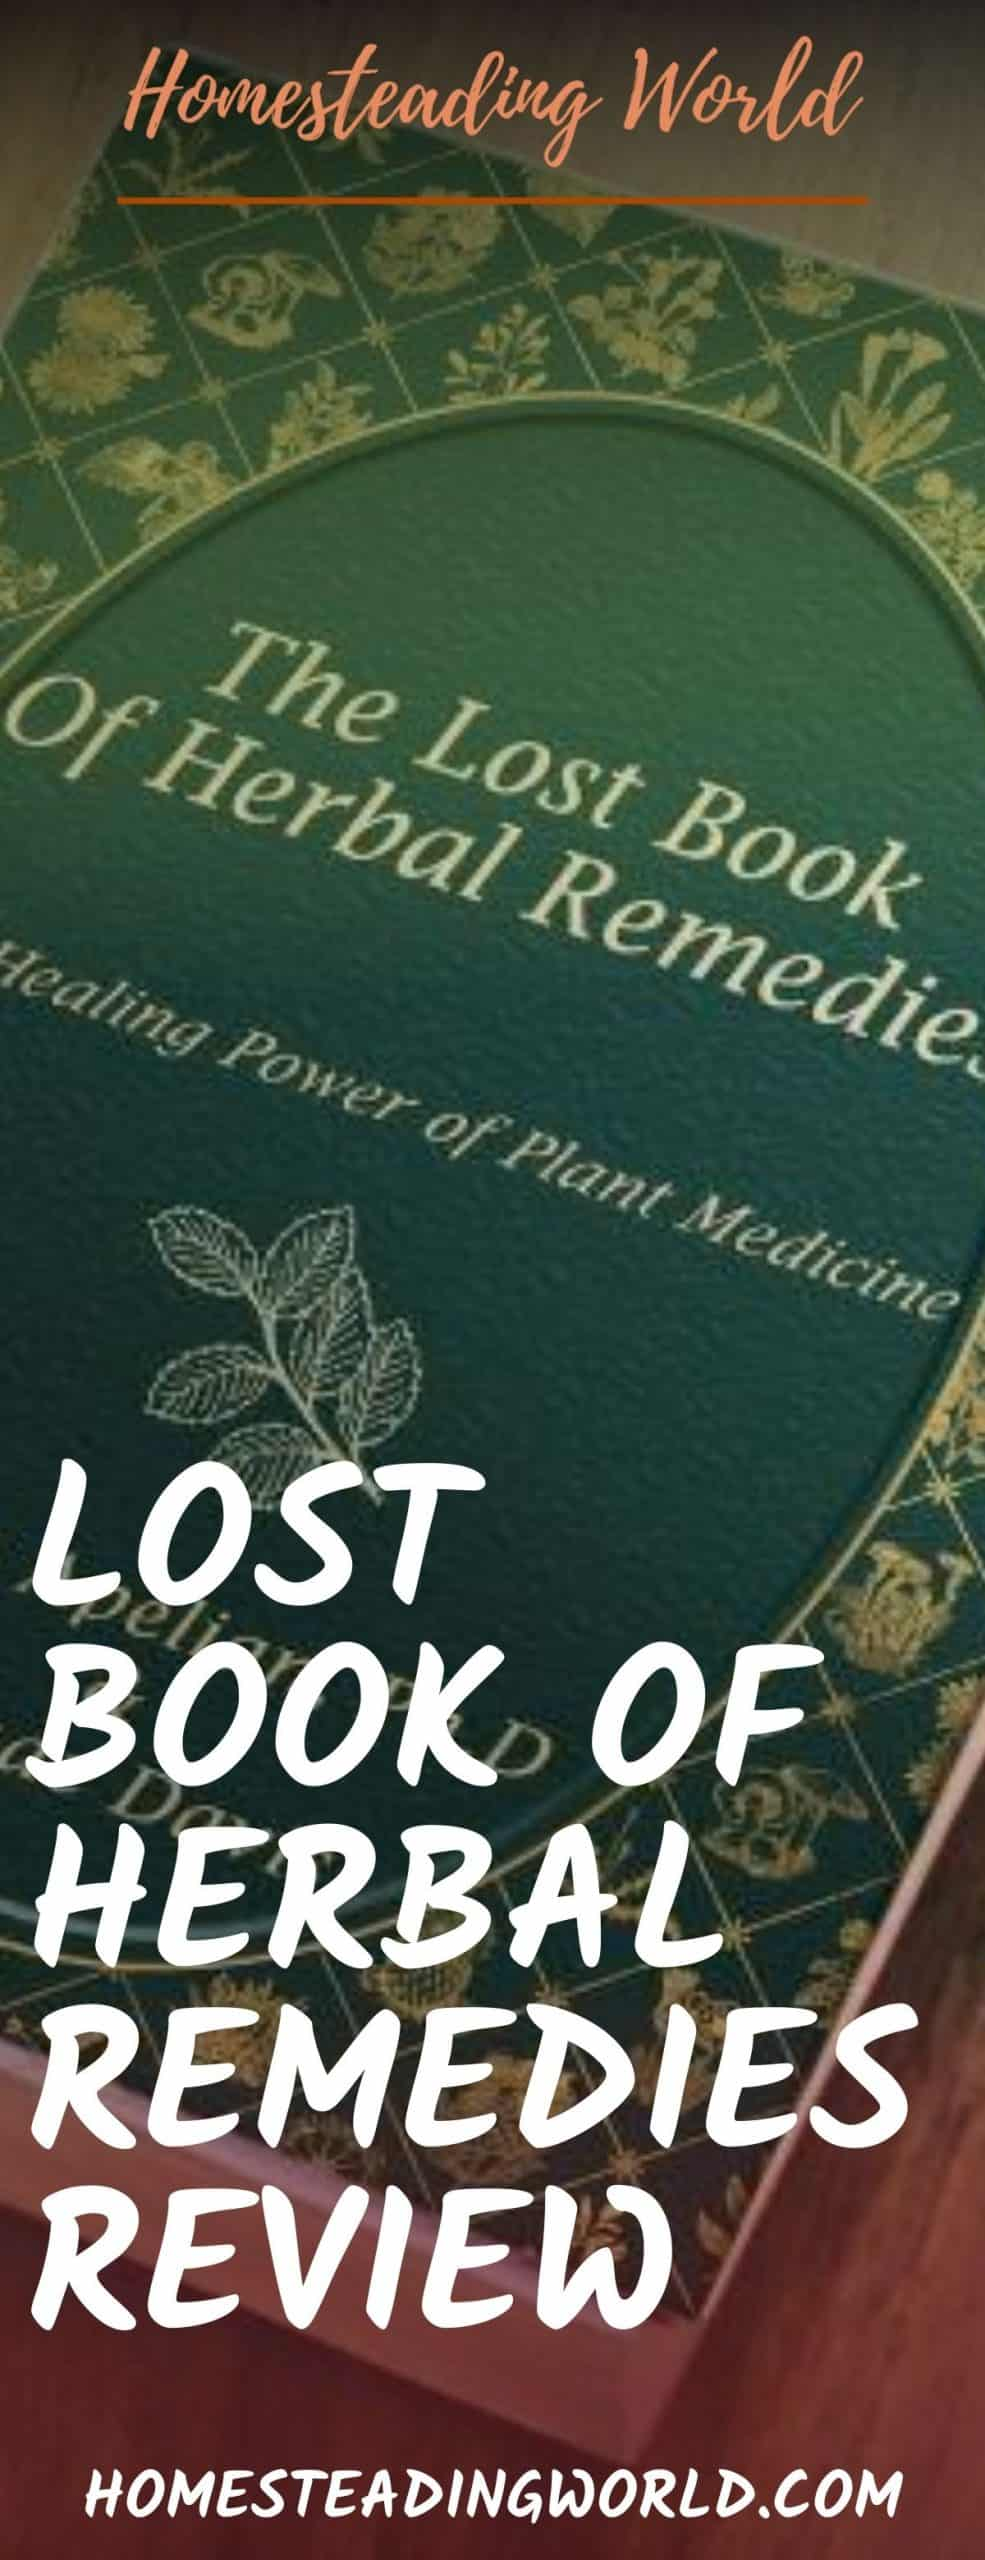 Lost Book of Herbal Remedies Book Review